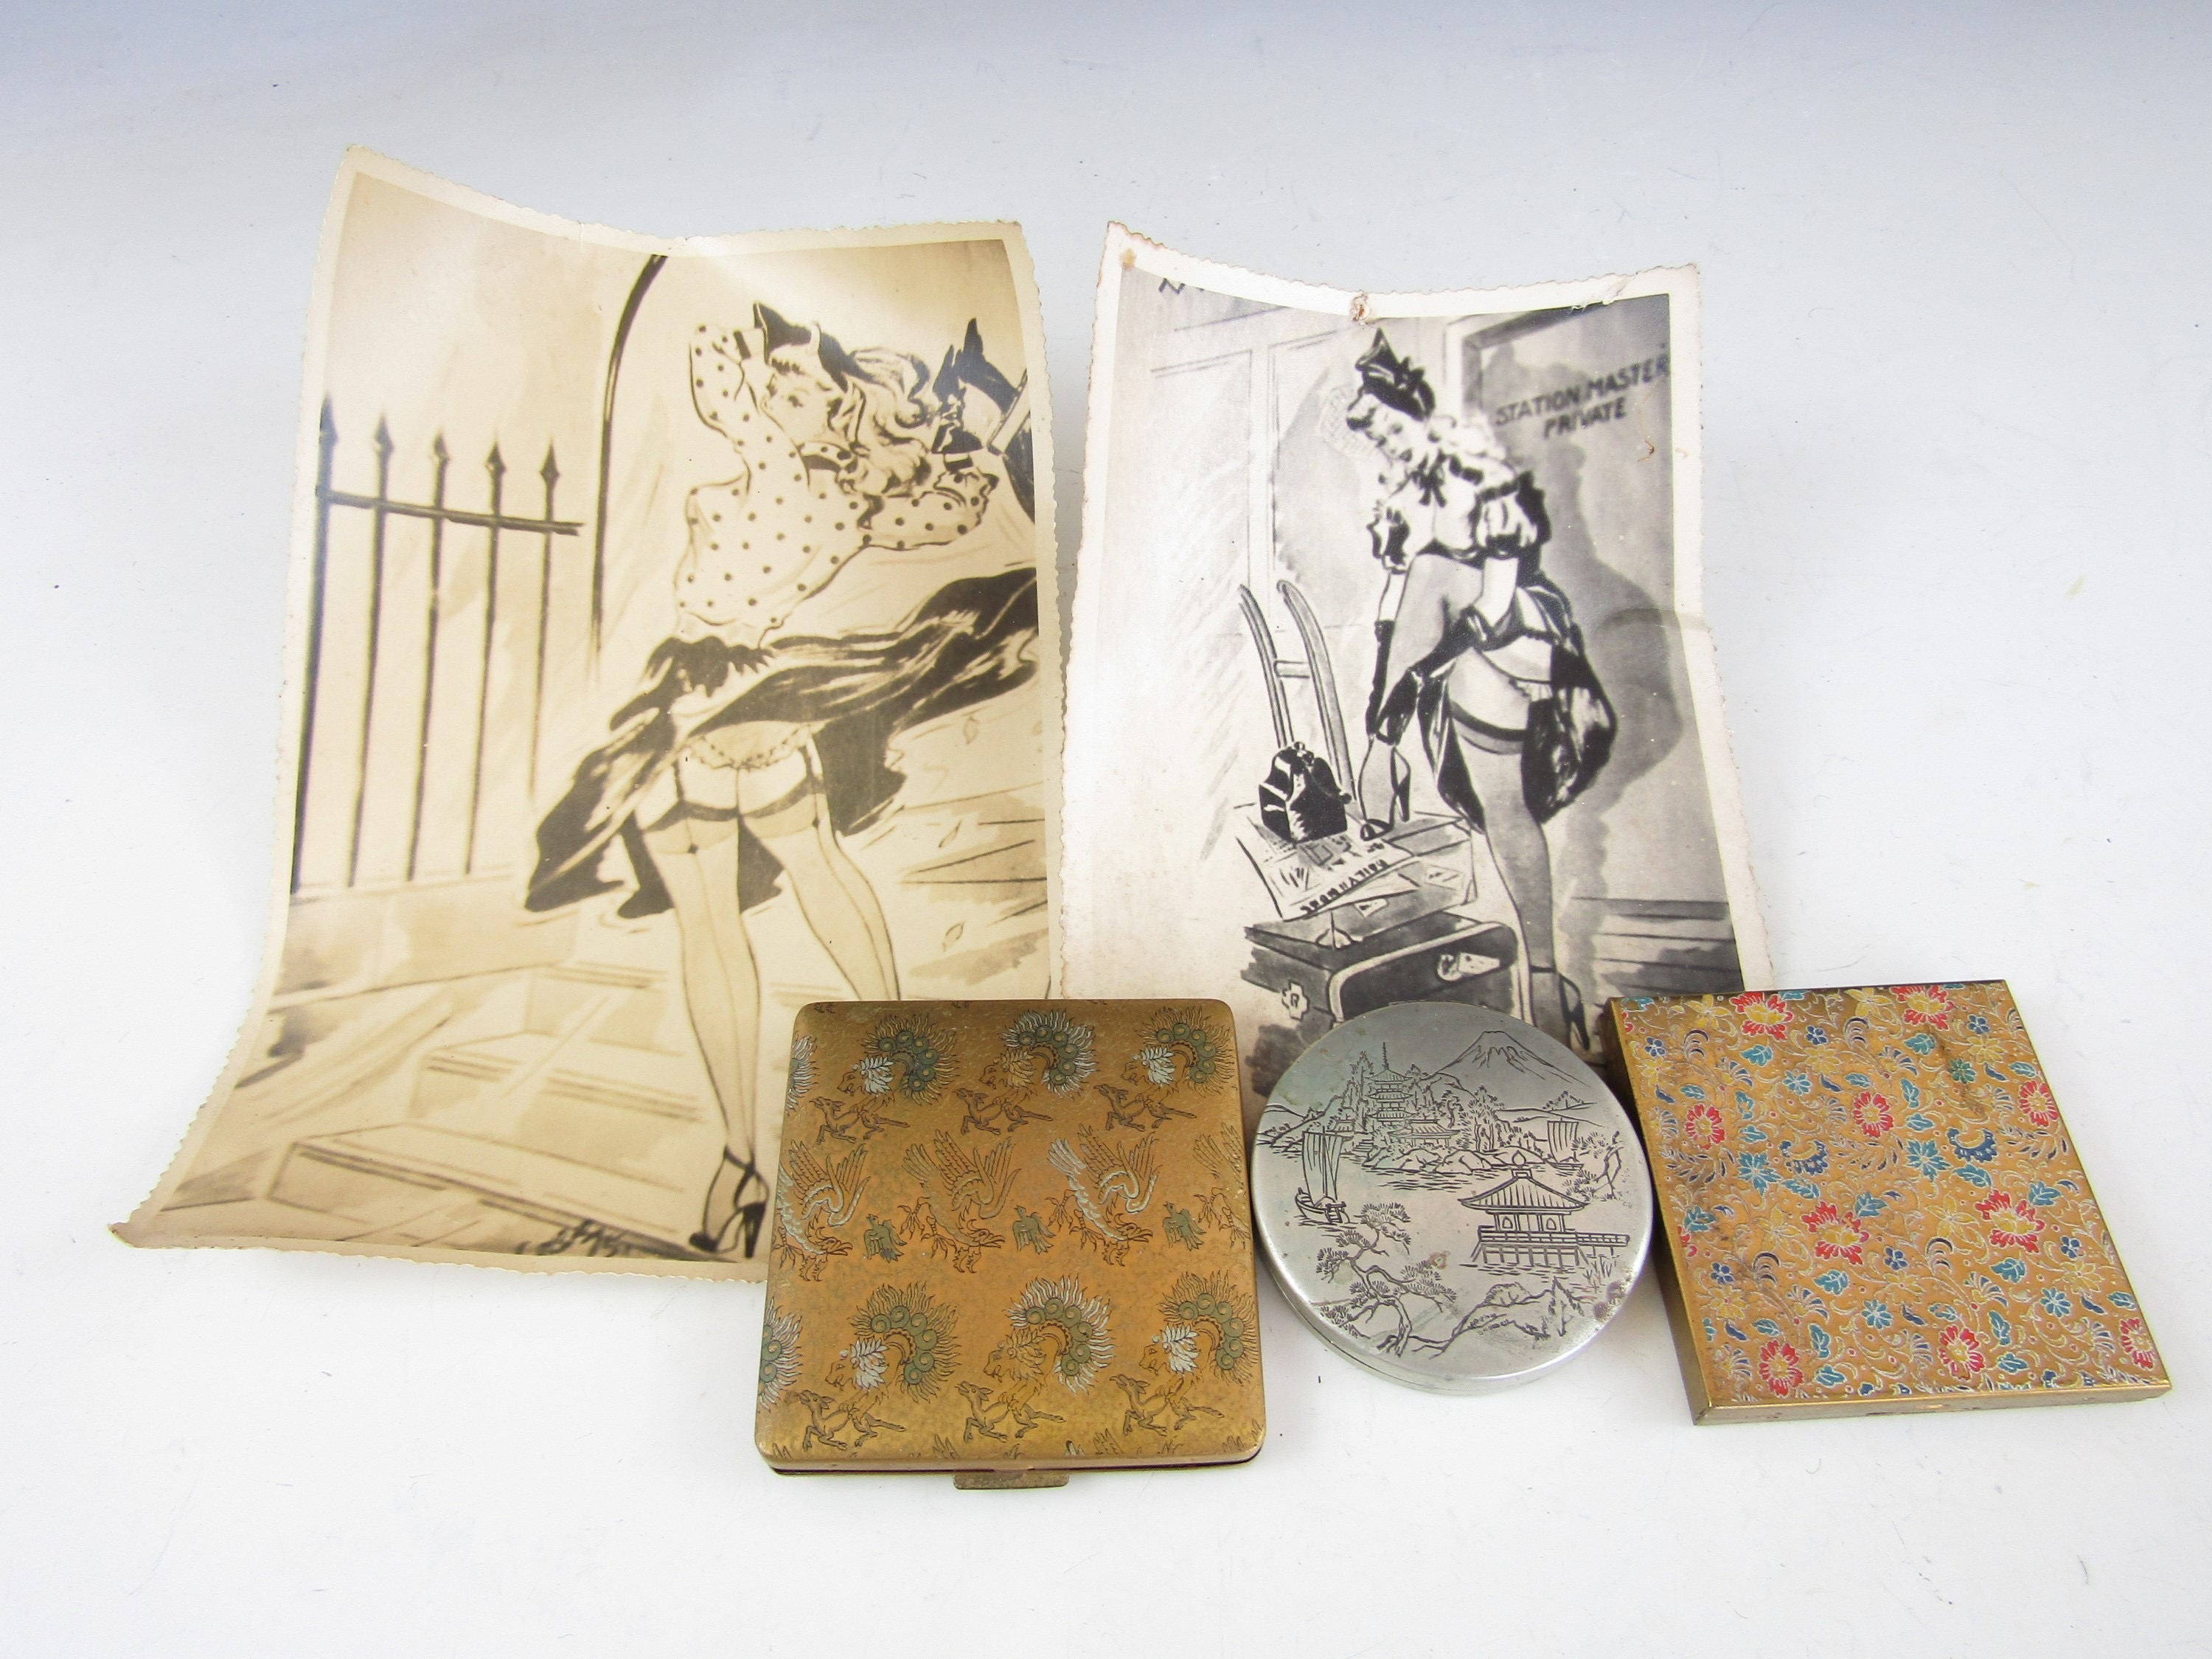 Lot 40 - A Vanity Fair compact together with one other, a Japanese pocket mirror and two 1940's cartoon